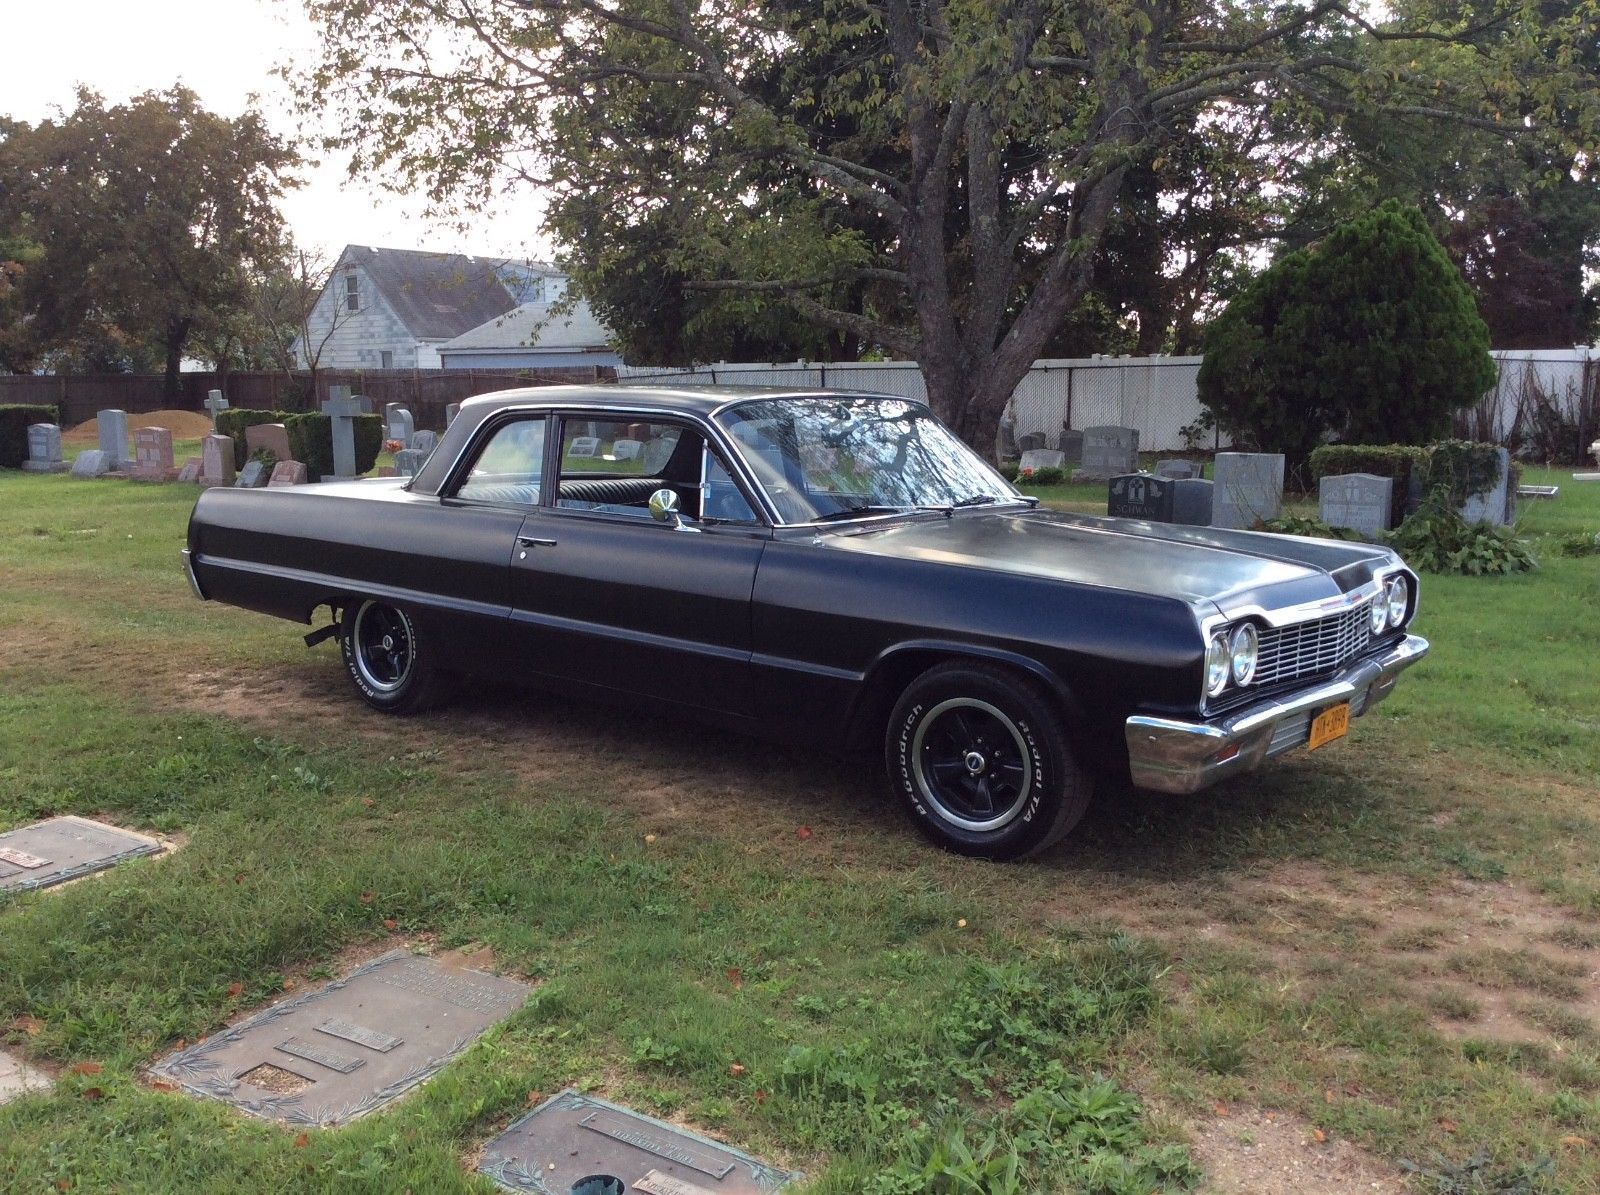 All Chevy chevy bel air 1964 : Nice Awesome 1964 Chevrolet Bel Air/150/210 Belair 1964 Chevrolet ...